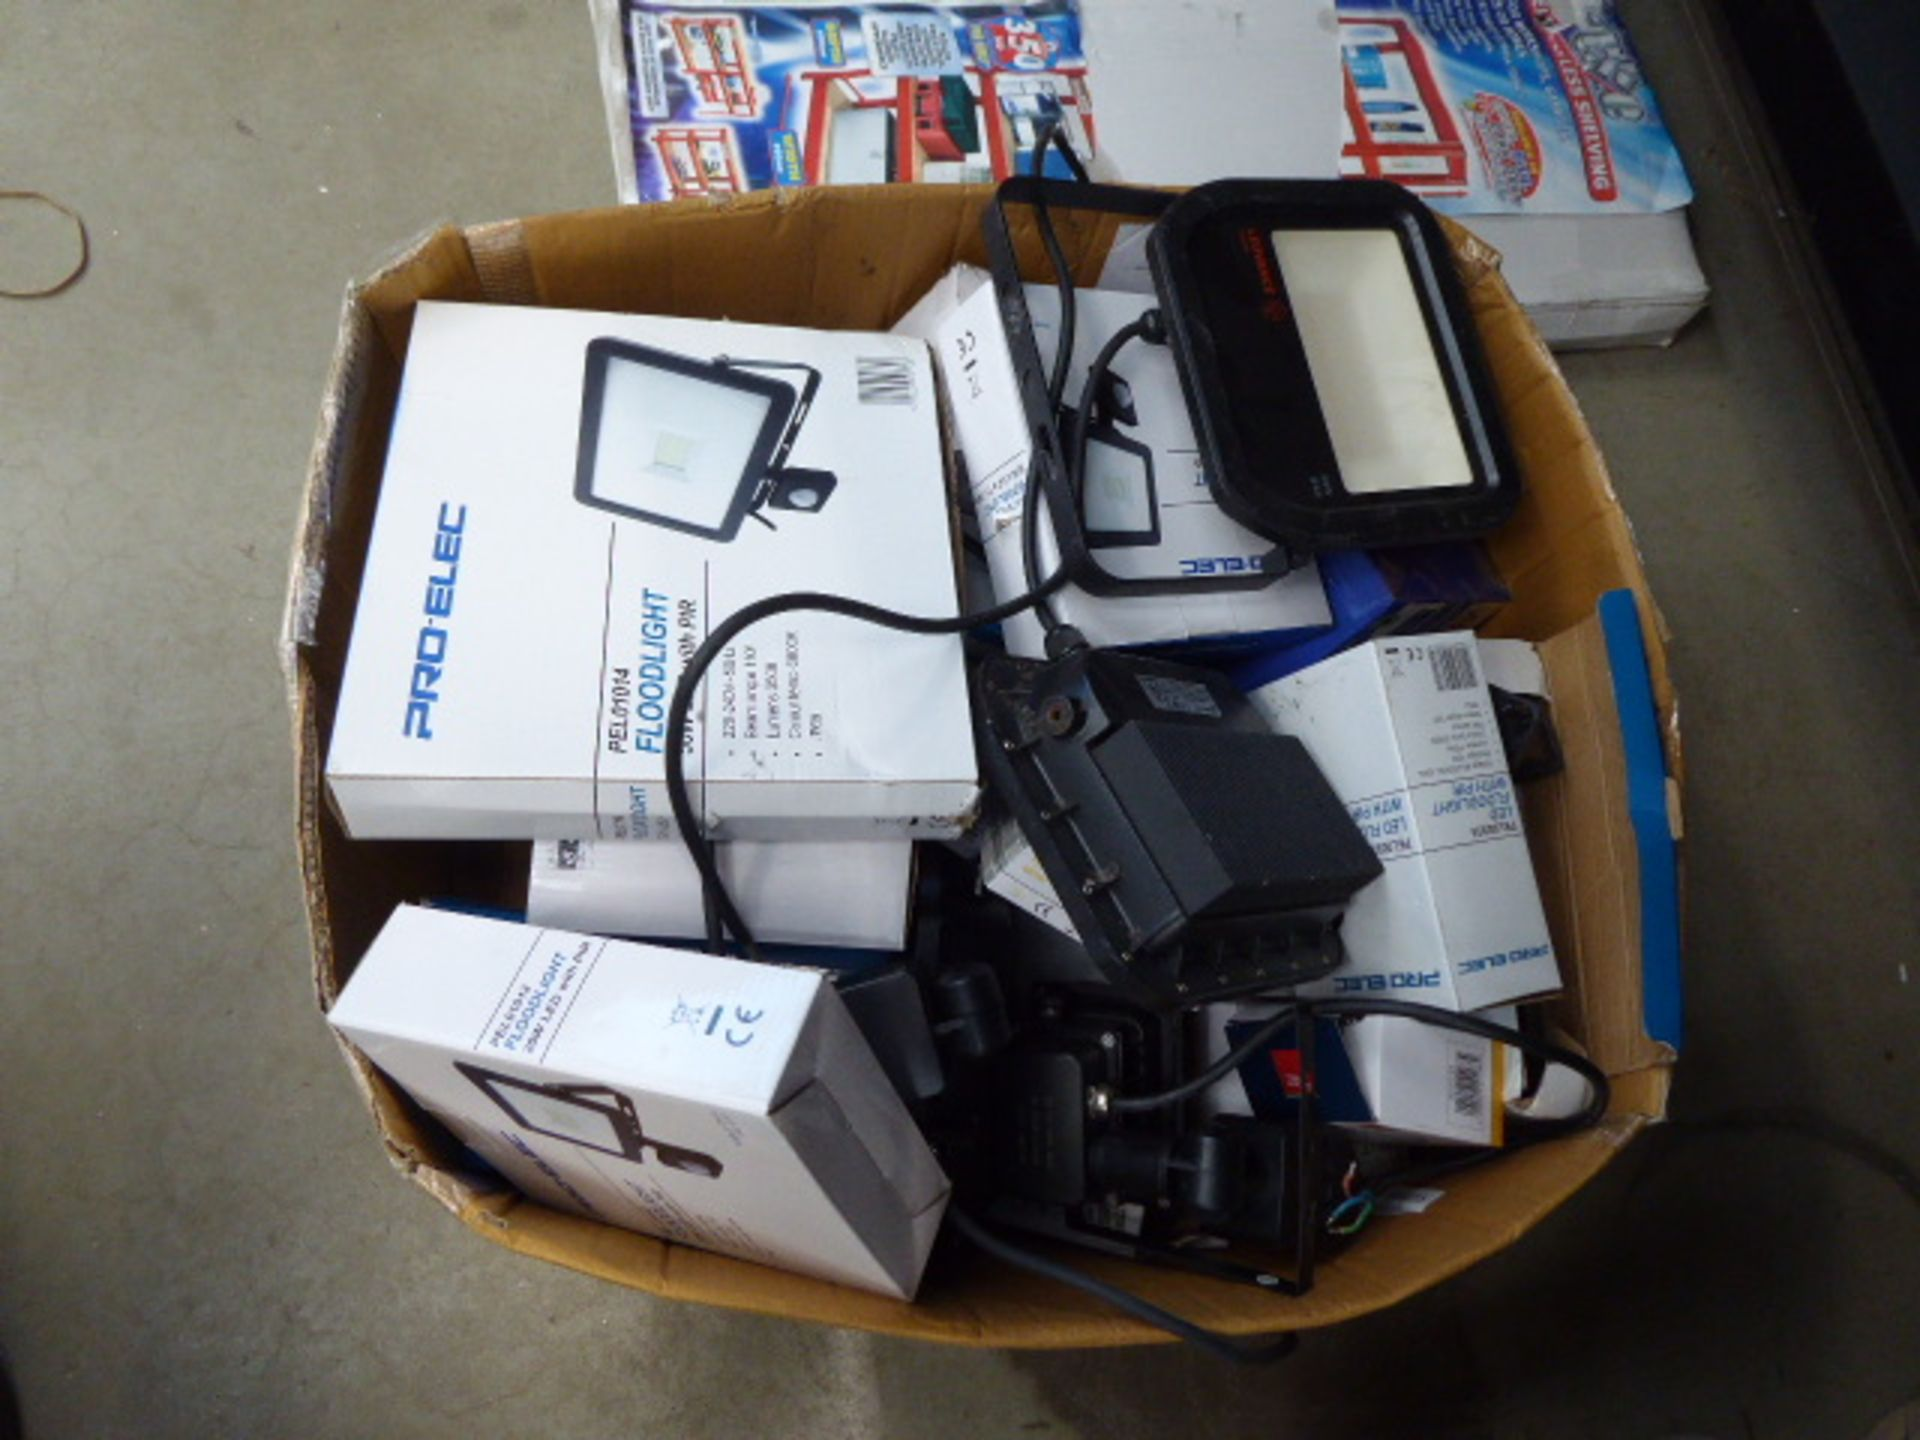 Large box of LED floodlights